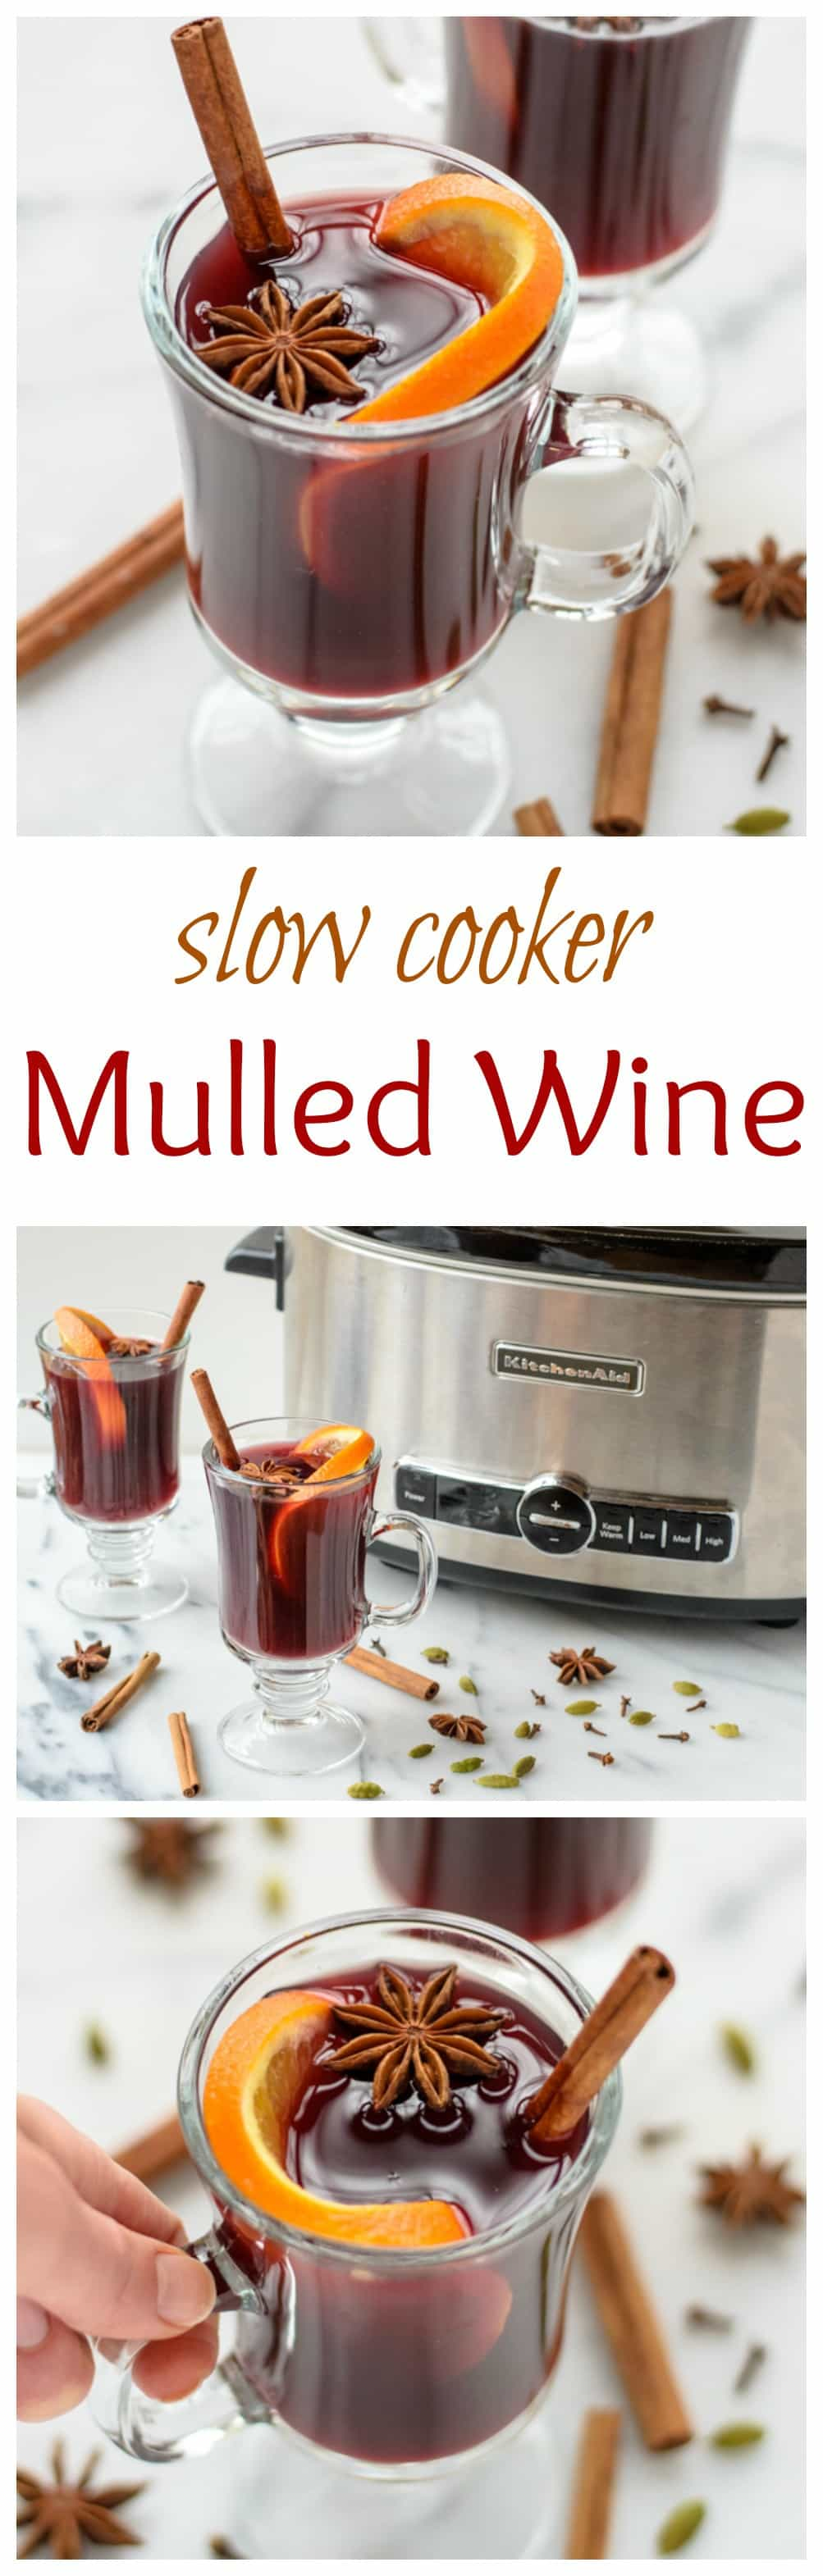 Slow cooker spiced wine (mulled wine) is an easy holiday cocktail recipe, made with red wine, apple cider, citrus, and warm spices. The delicious warm drink is perfect for holiday parties. #cocktails #Christmas #recipe